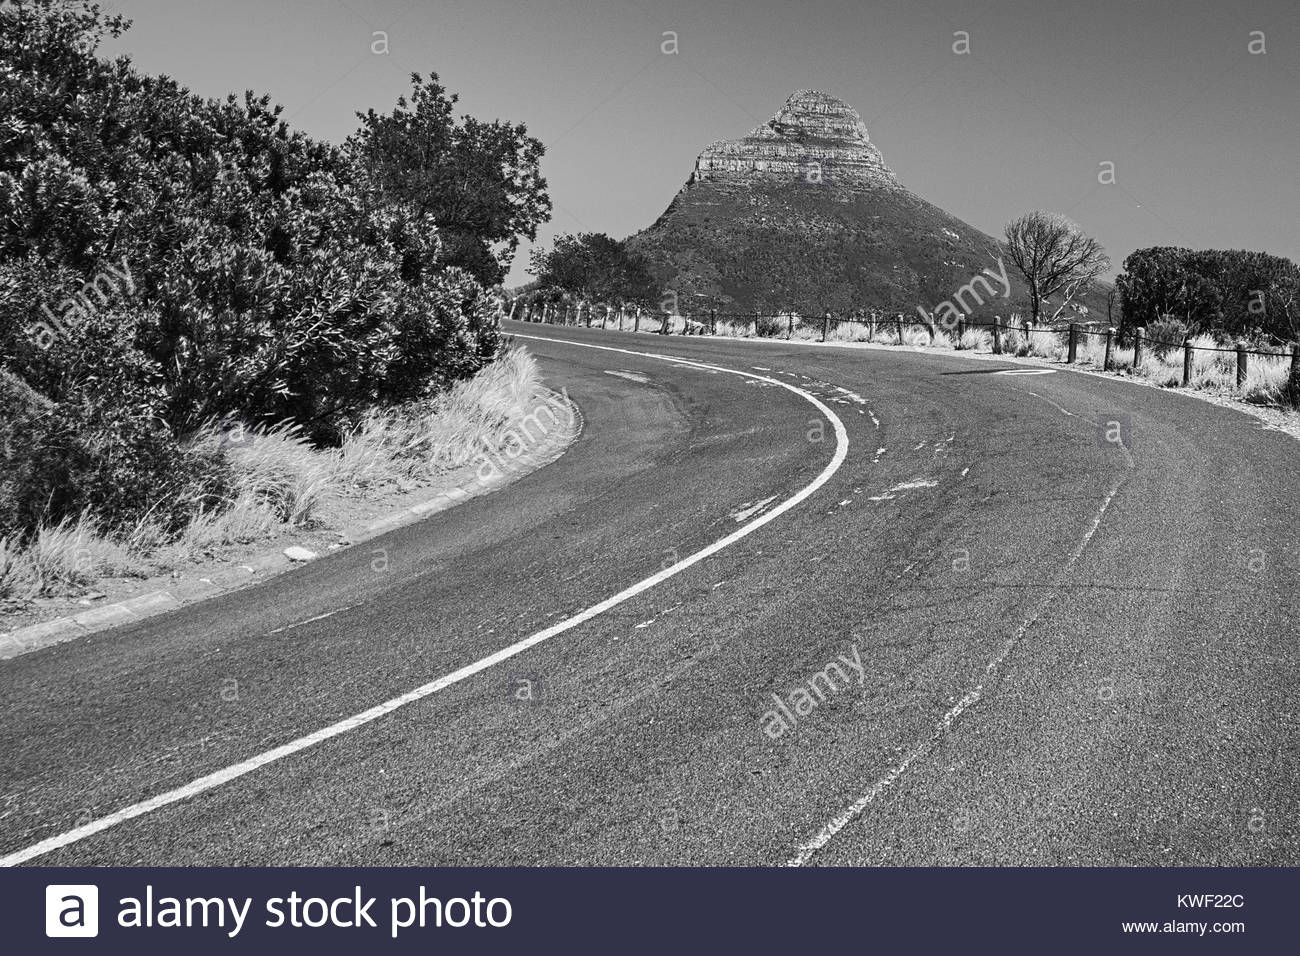 Road to Lion's Head, South Africa - Stock Image